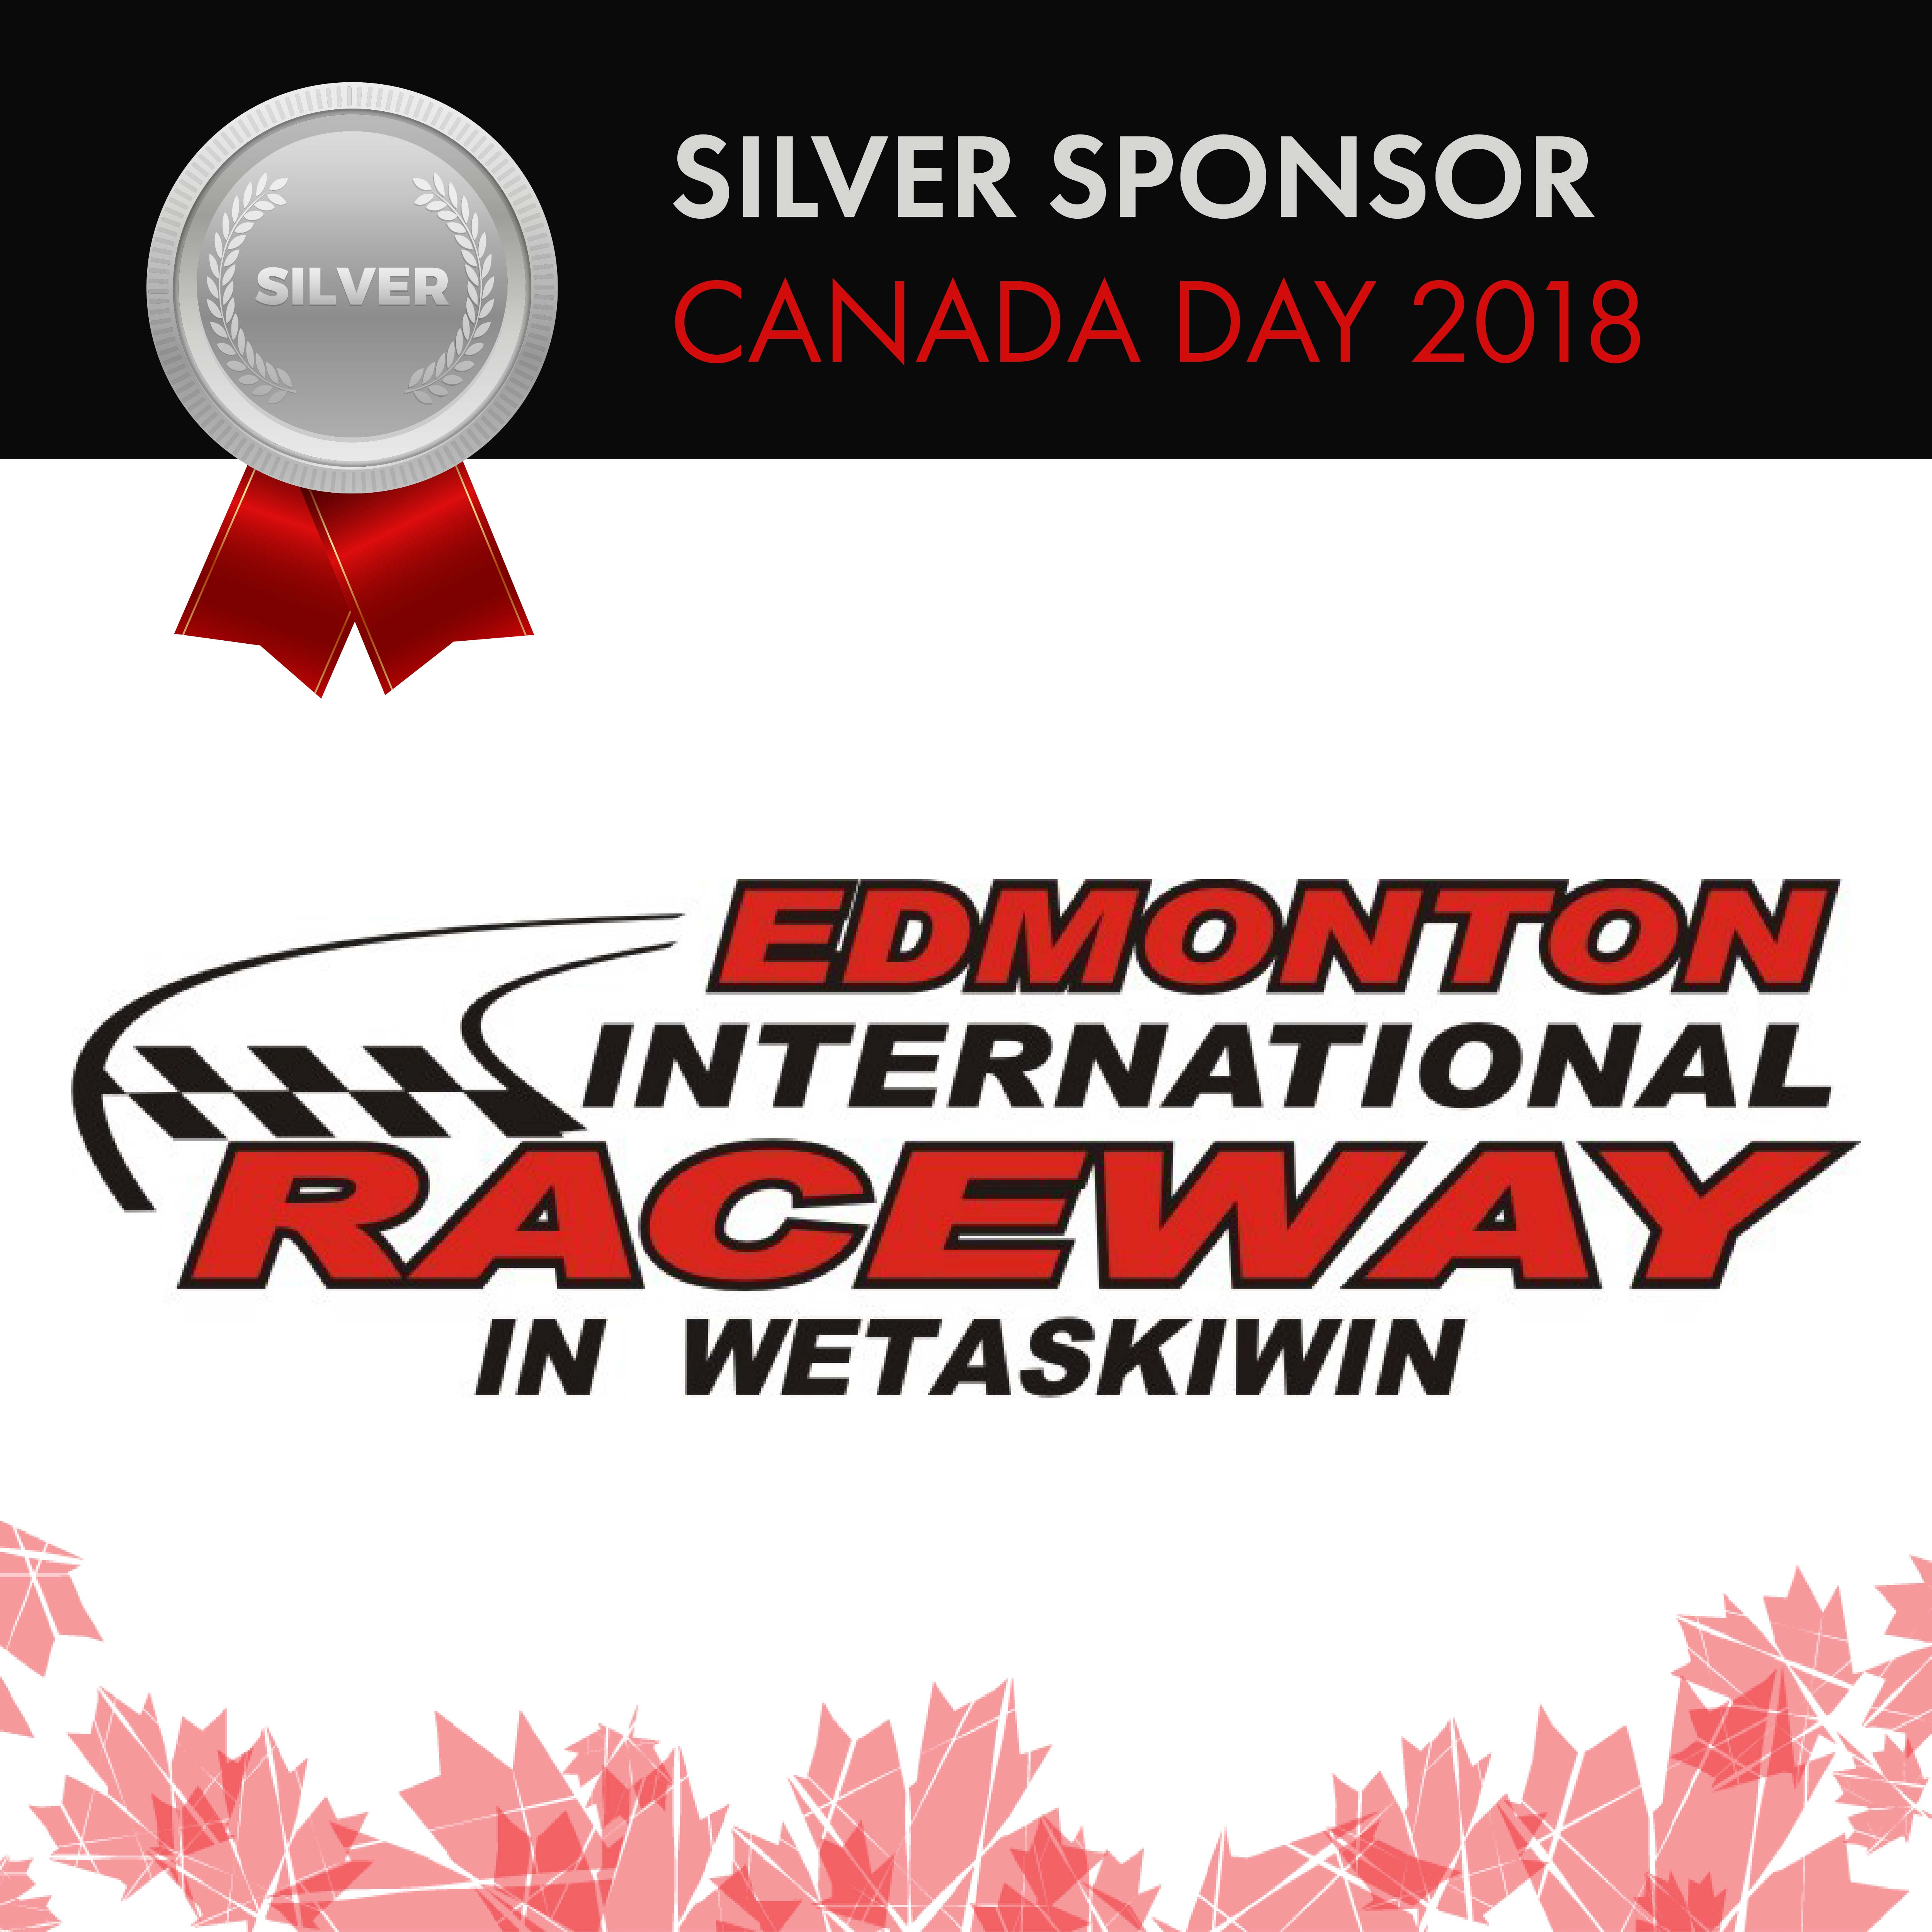 Silver Sponsor Ad - Edmonton International Raceway - reduced-01.jpg